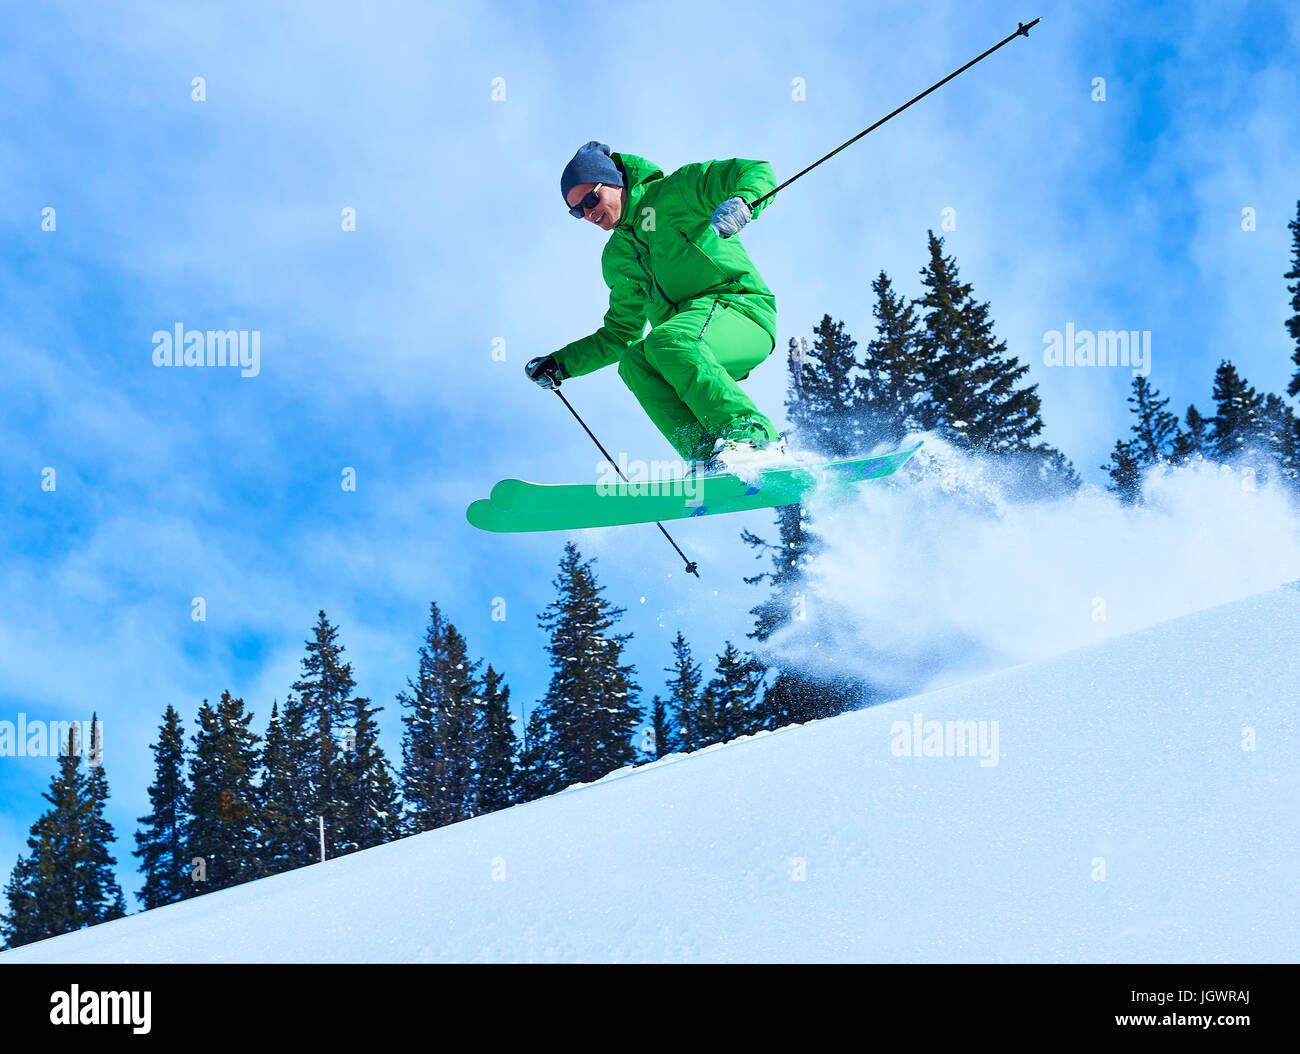 Man jumping while skiing down snow covered mountainside, Aspen, Colorado, USA - Stock Image